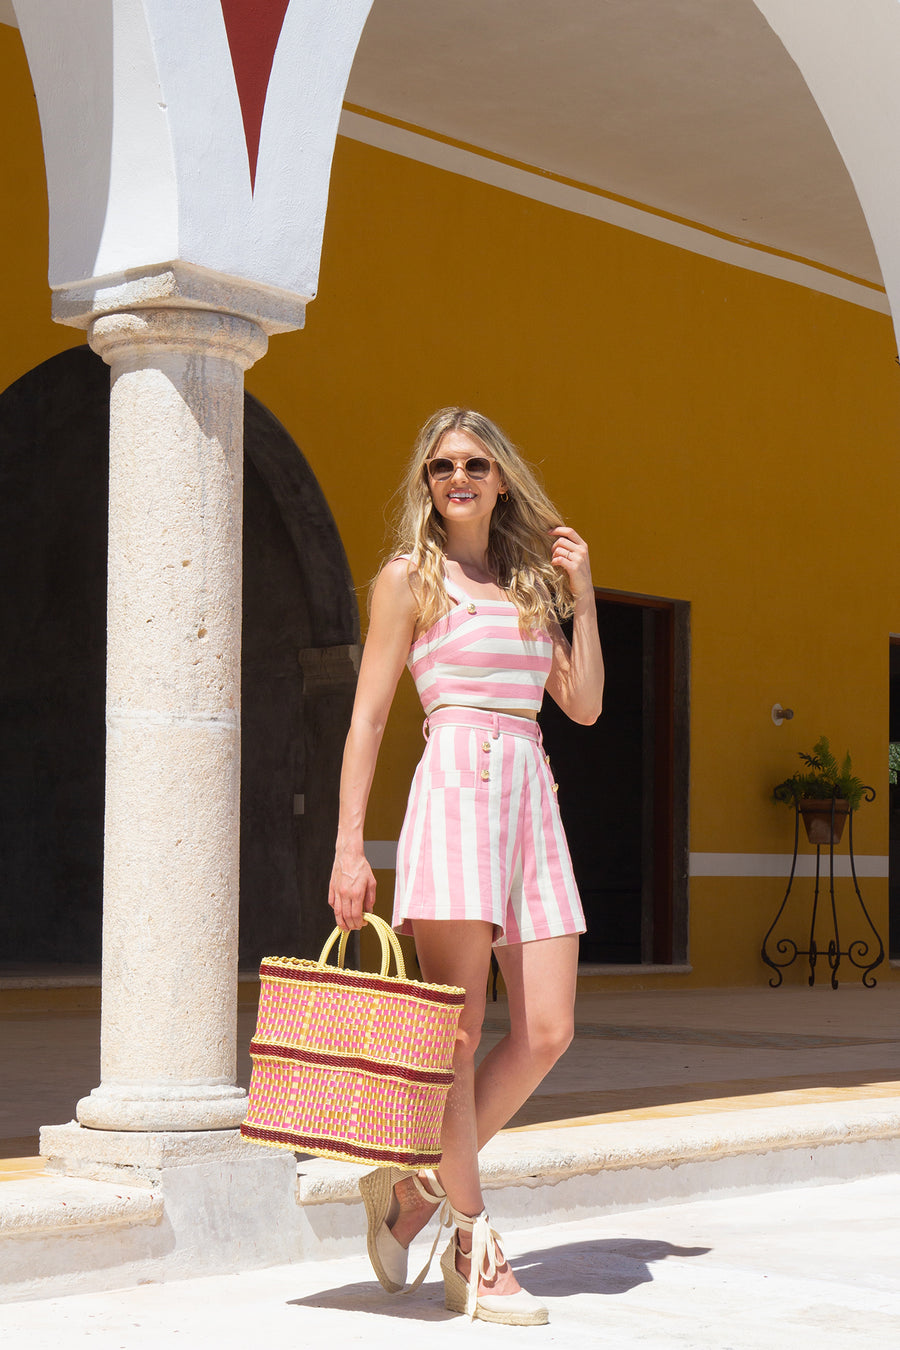 This is a photo of a woman wearing a matching two-piece suit with shorts and a cropped top,. The outfit is pink and neutral thick stripes with gold buttons. She stands in front of a yellow wall and holds a pink and yellow oversized woven tote bag.